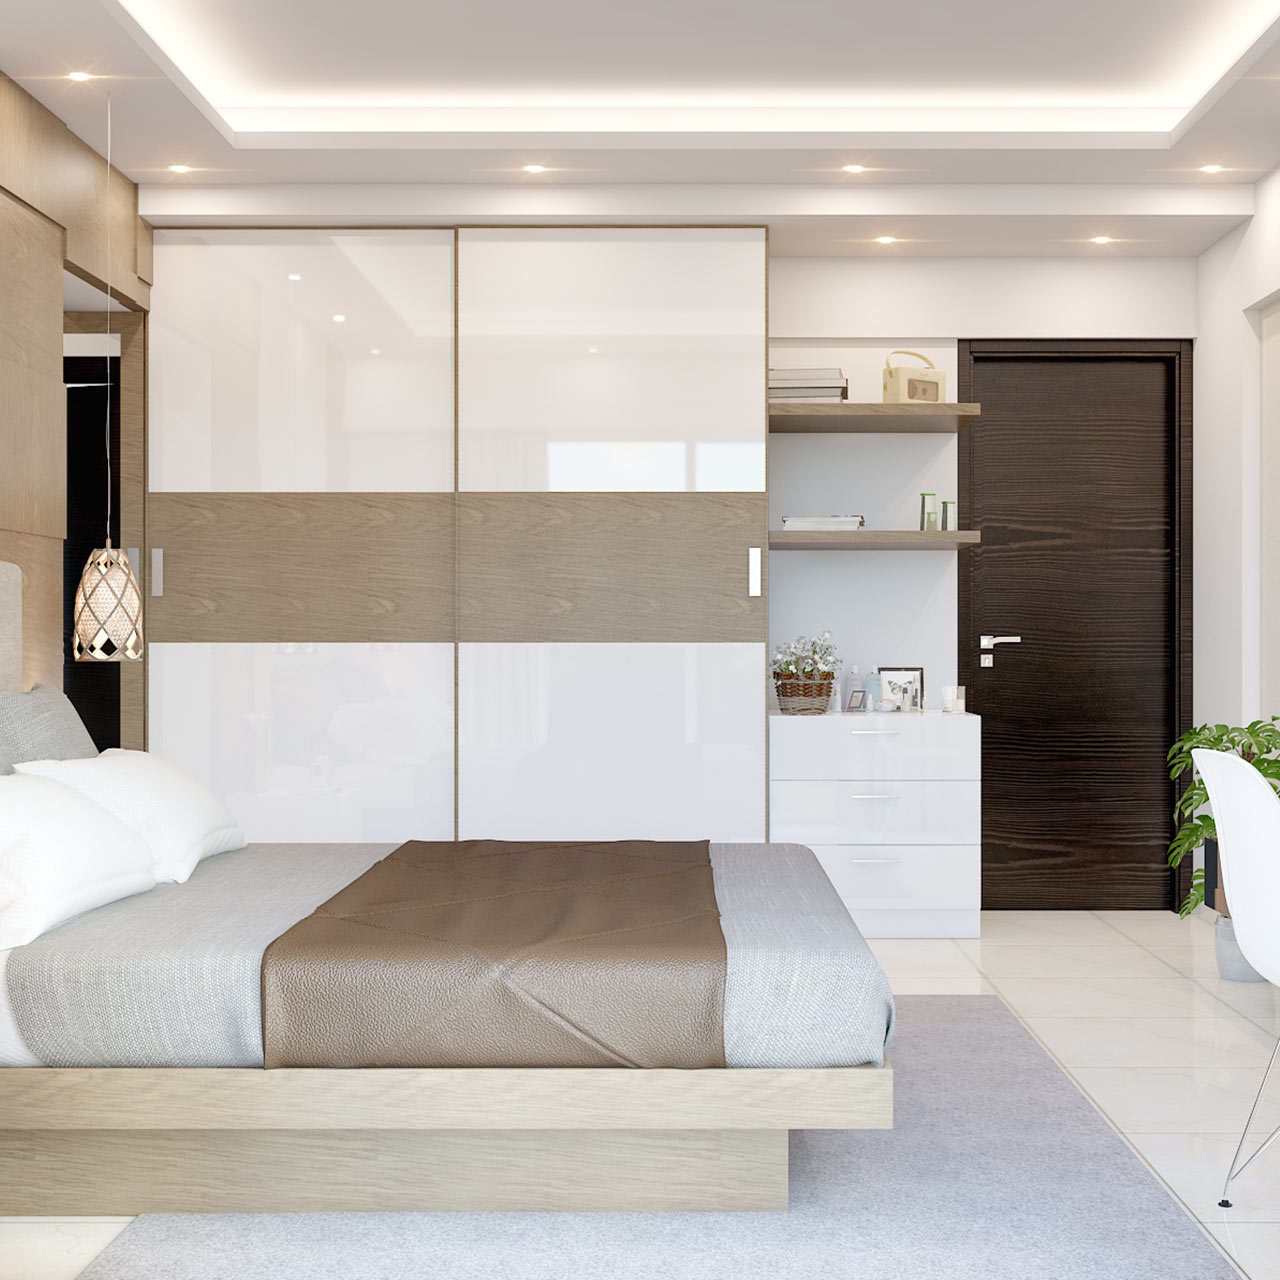 Latest Wardrobe Designs For Your Bedroom In 2020 | Design Cafe